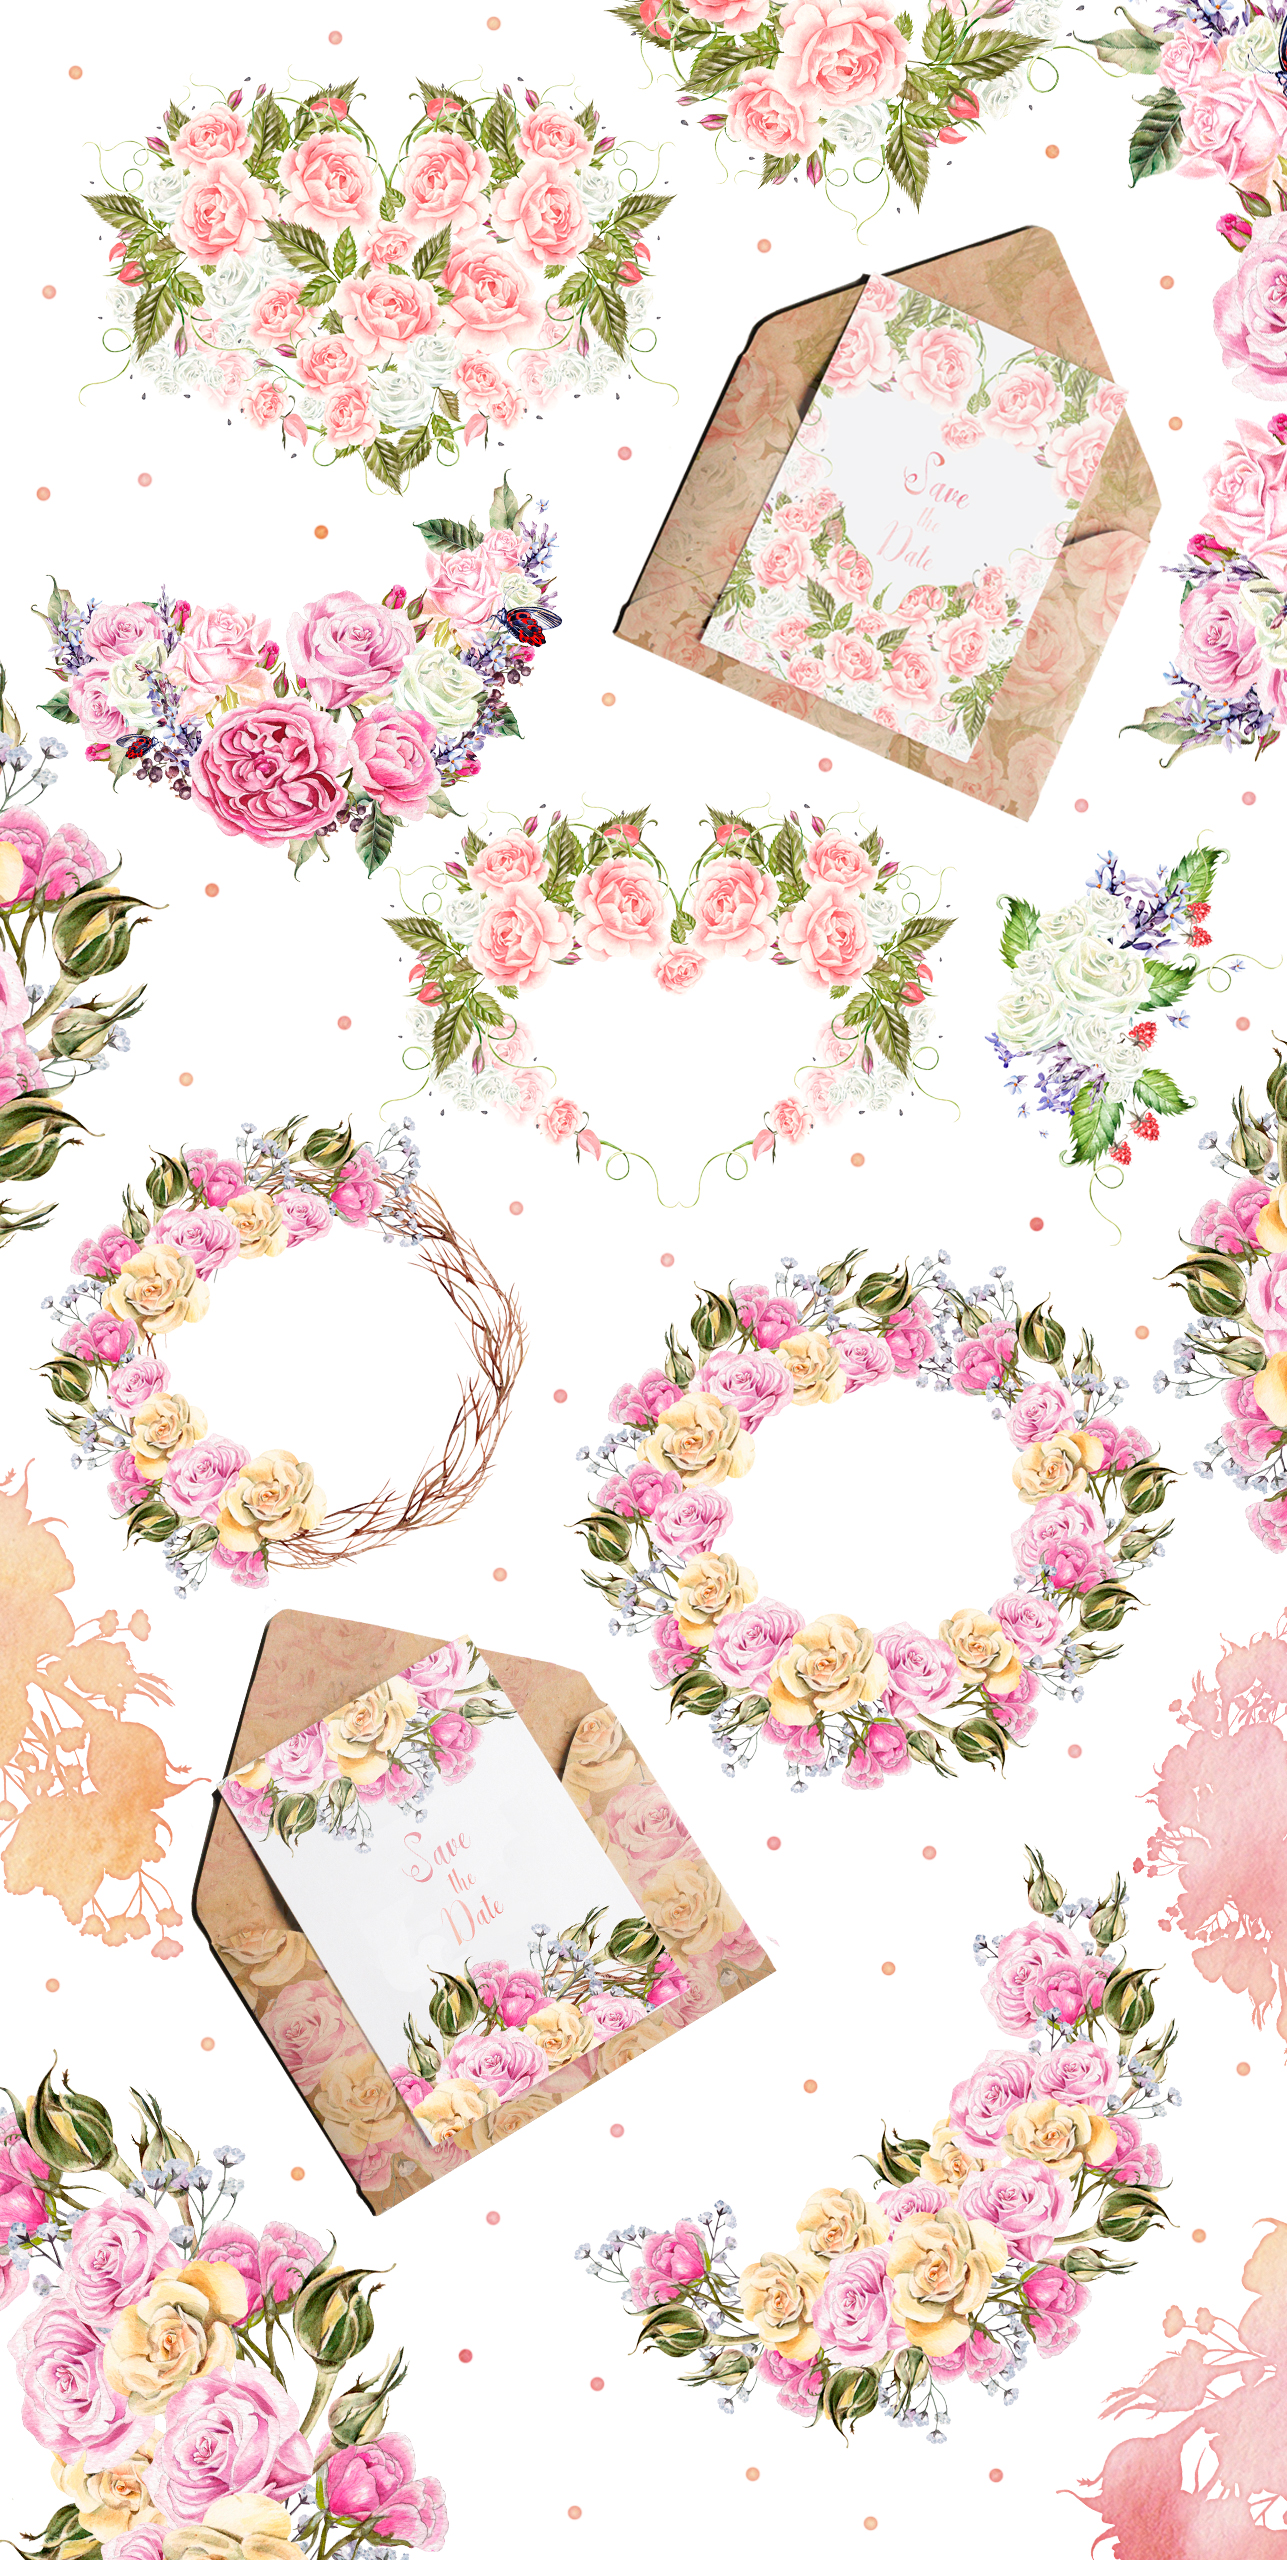 Watercolor Elements & Wreath example image 2